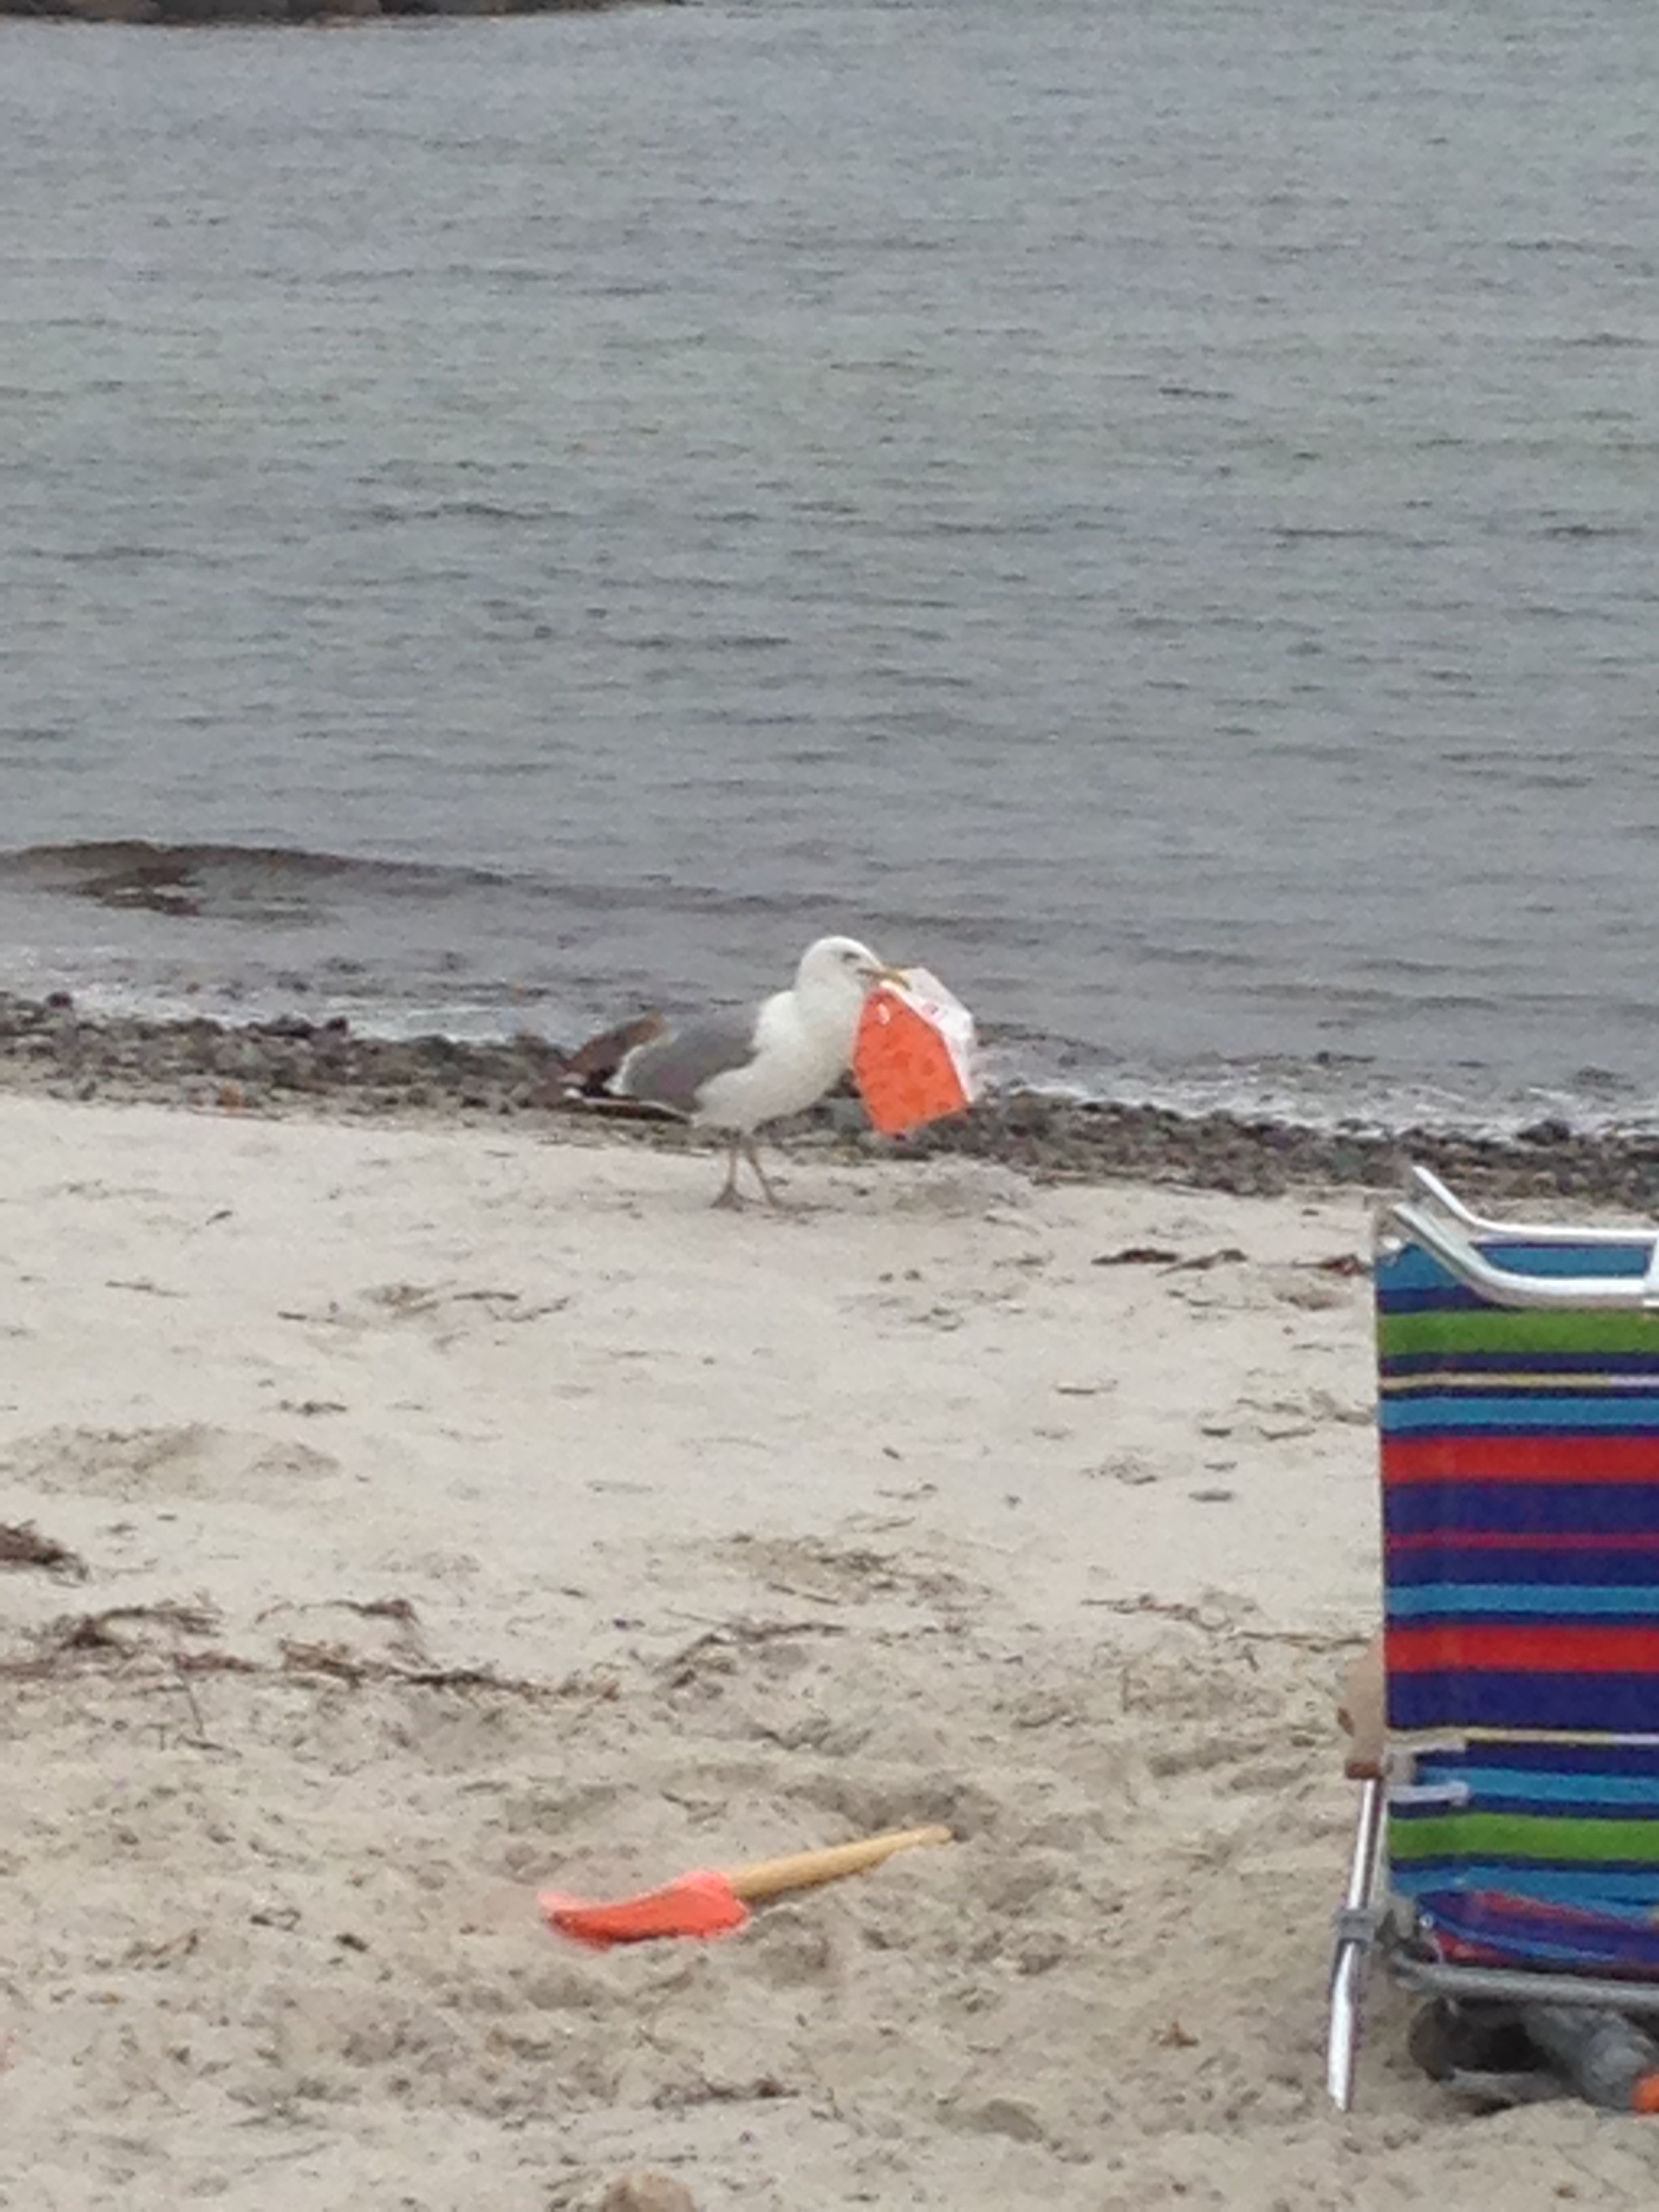 Seagull at the beach stealing some Dunkin Donuts lol